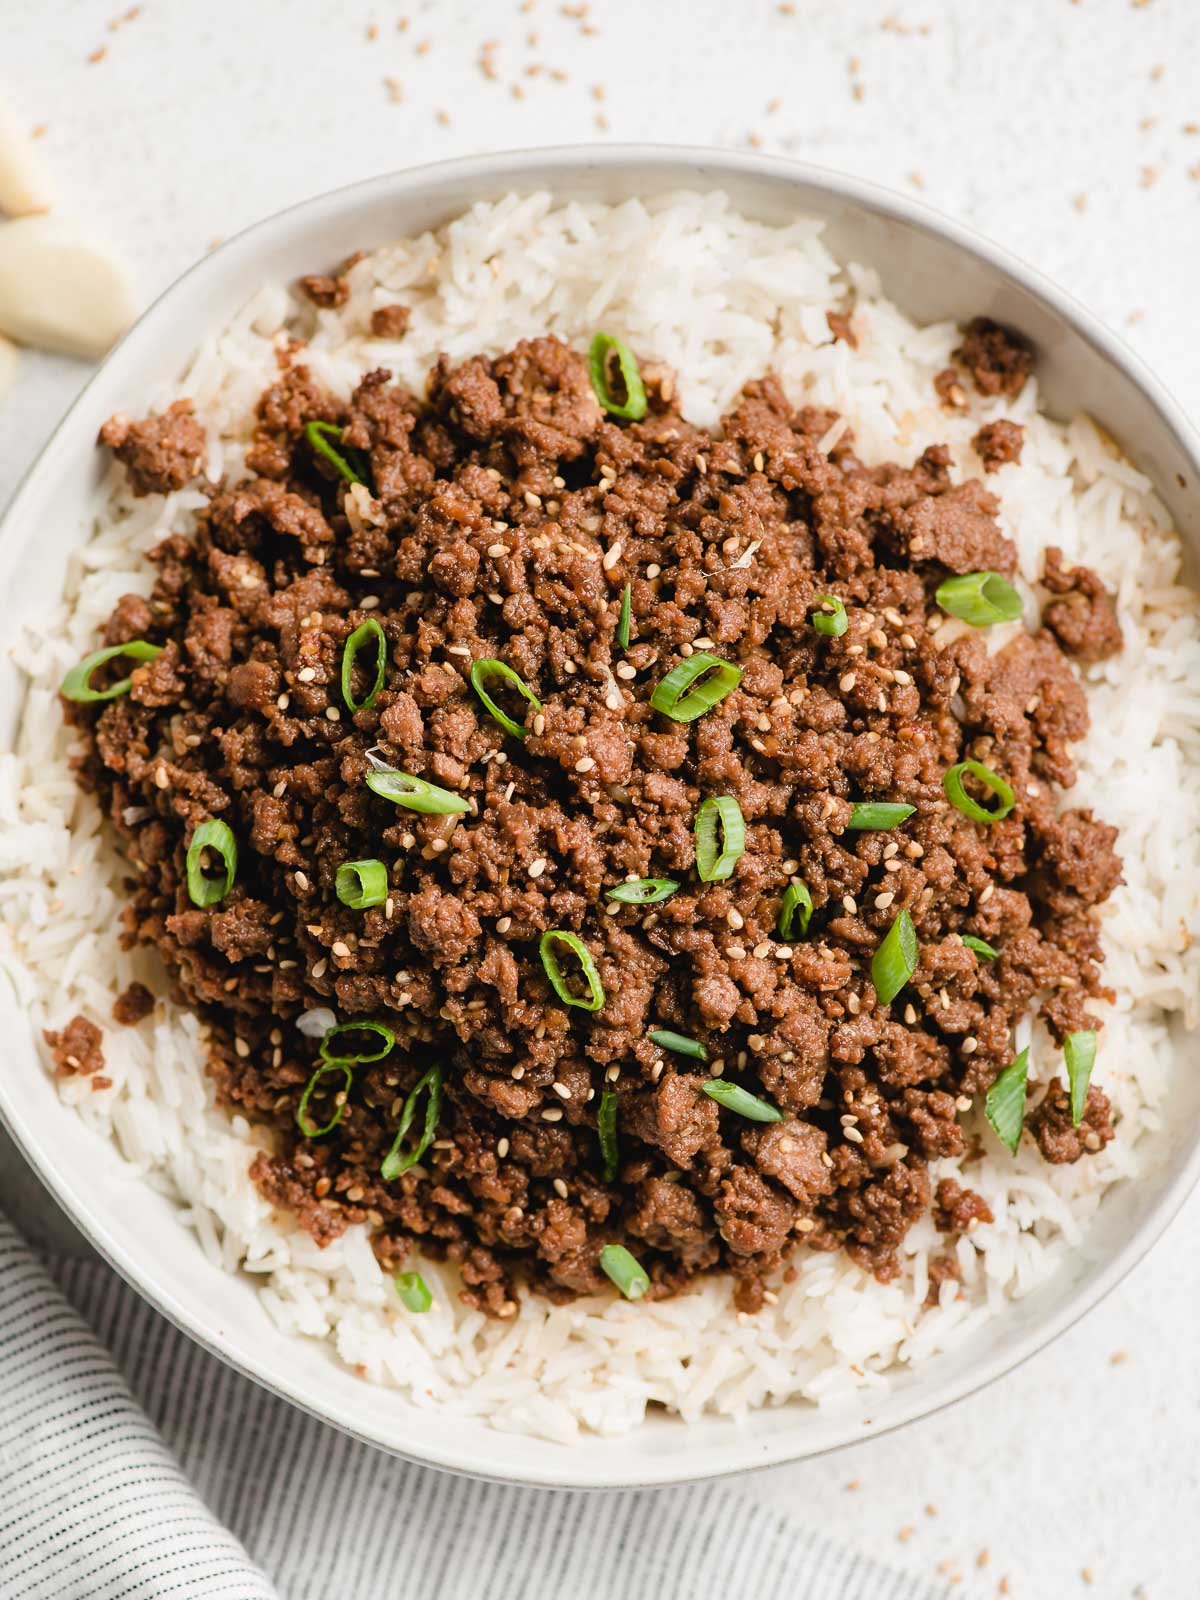 Korean ground beef topped with green onions and sesame seeds.